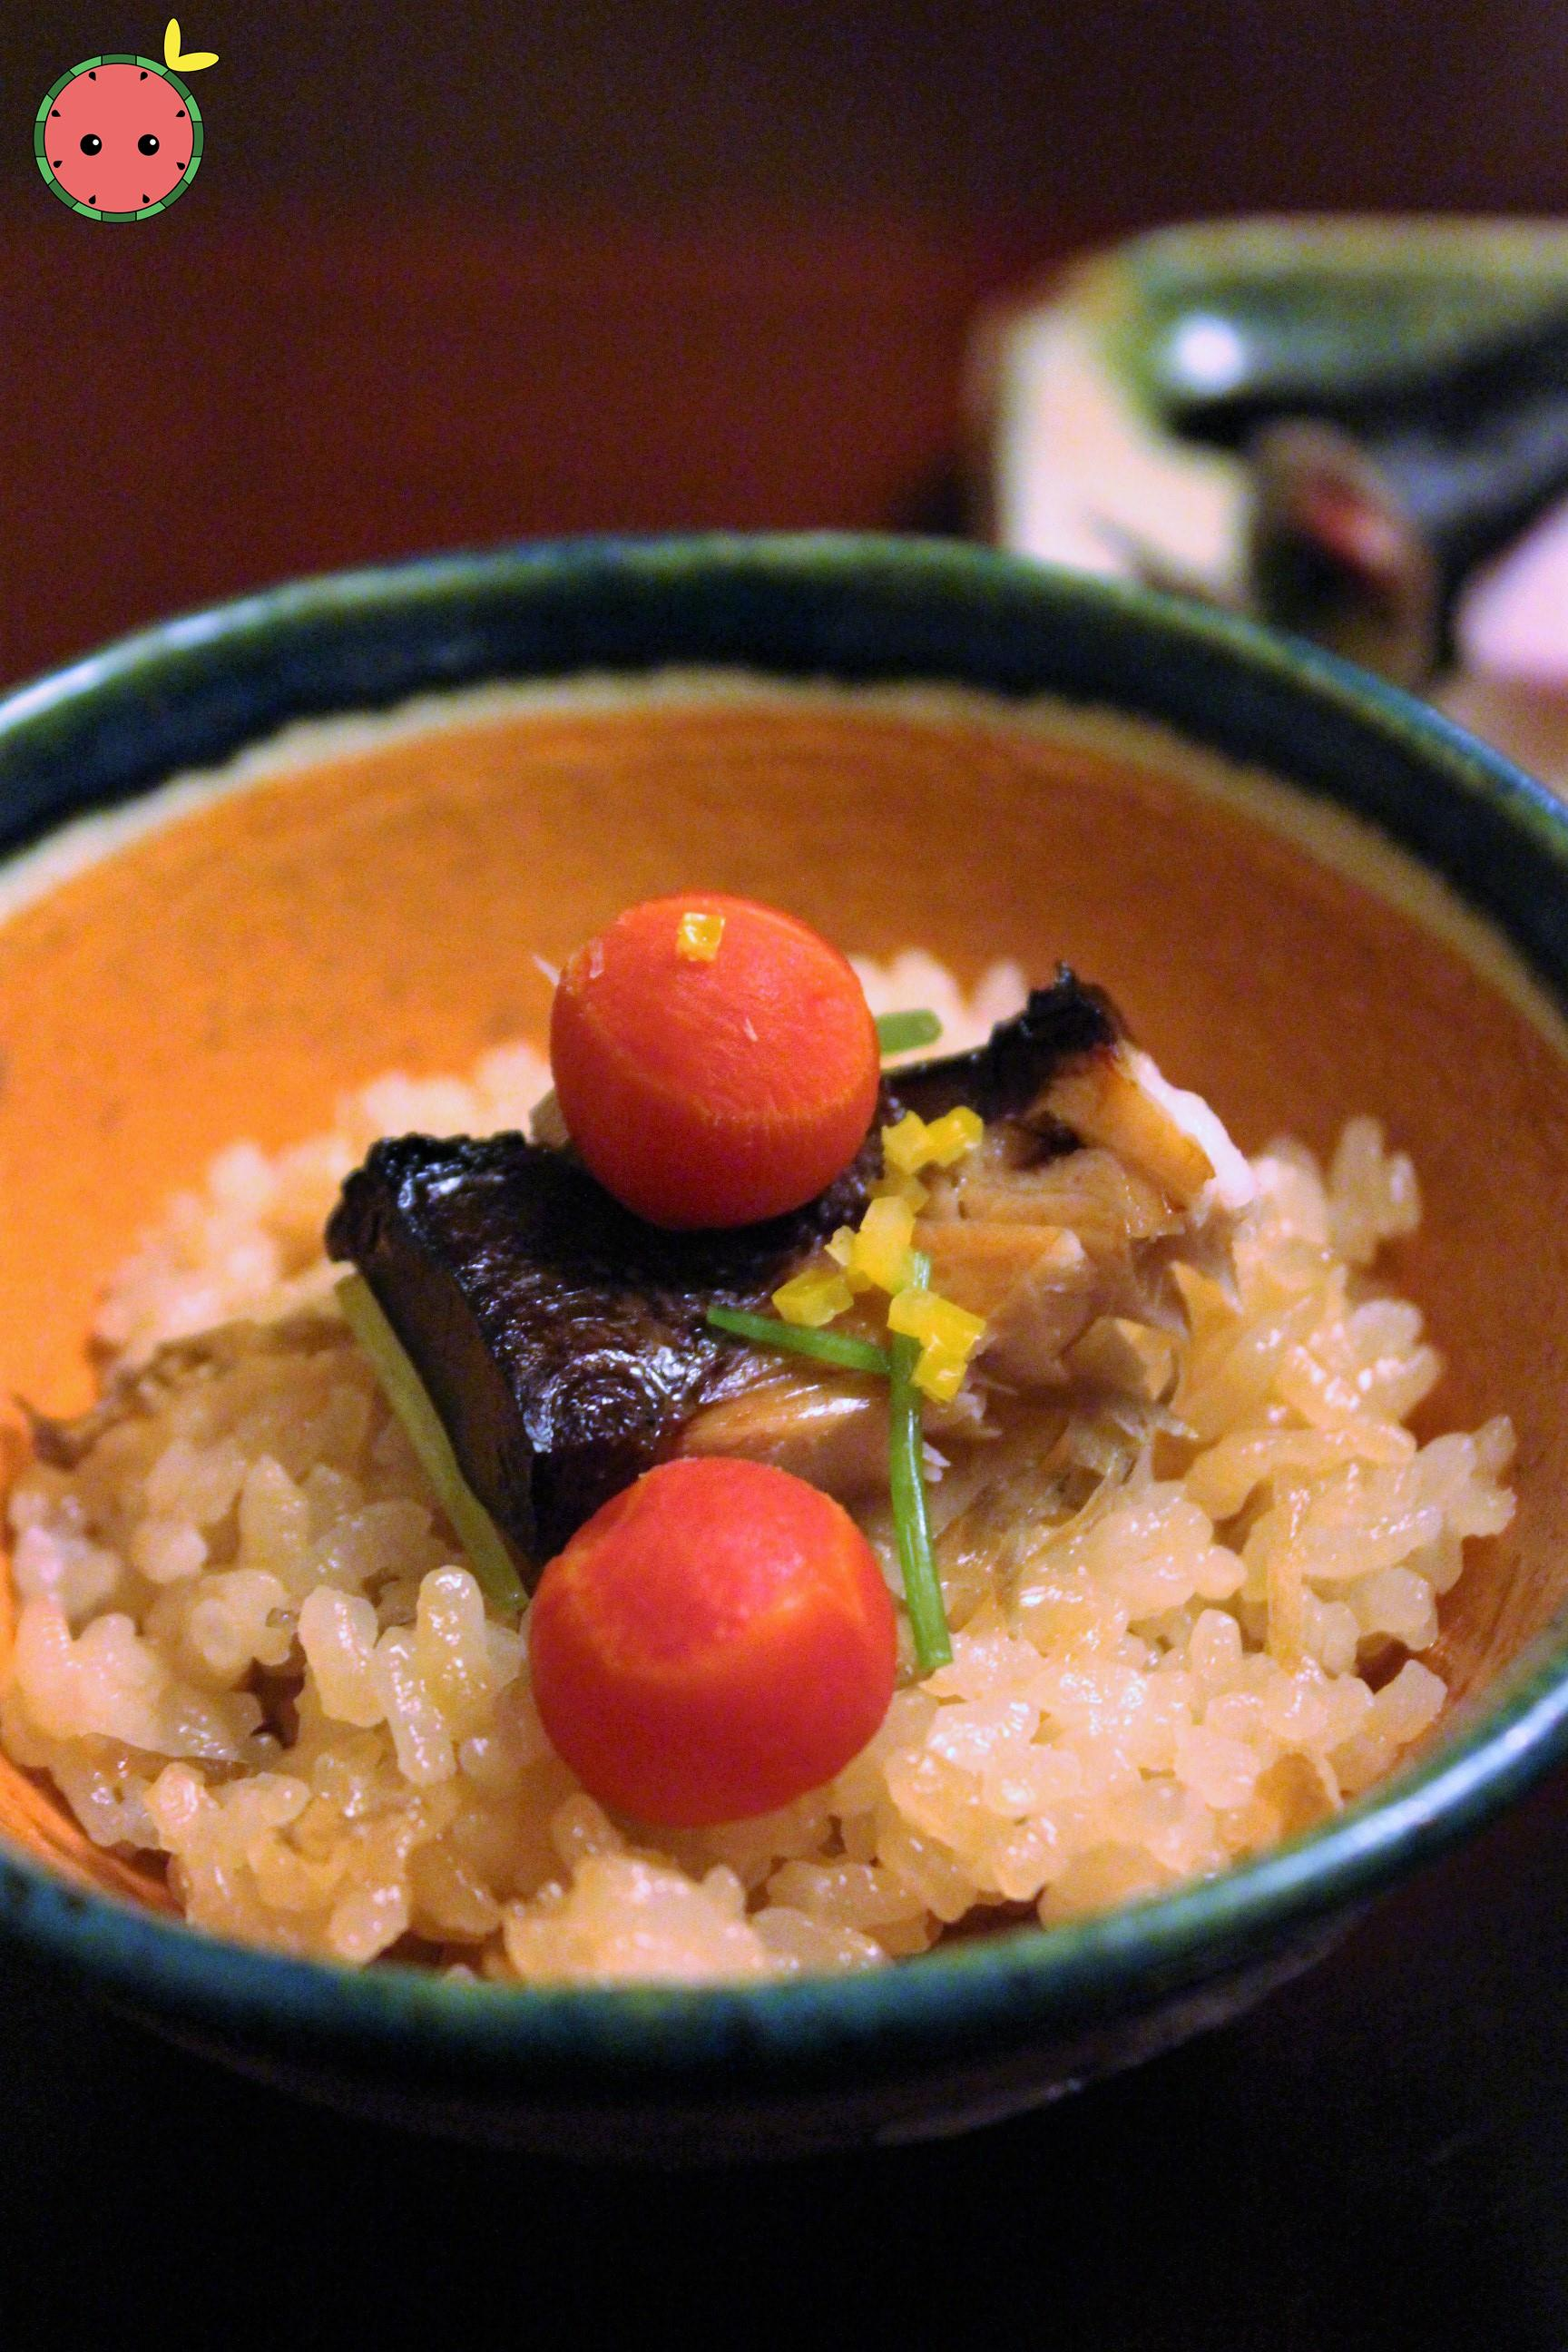 Yellowtail, Burdock, Radish, and Carrots over Rice 2